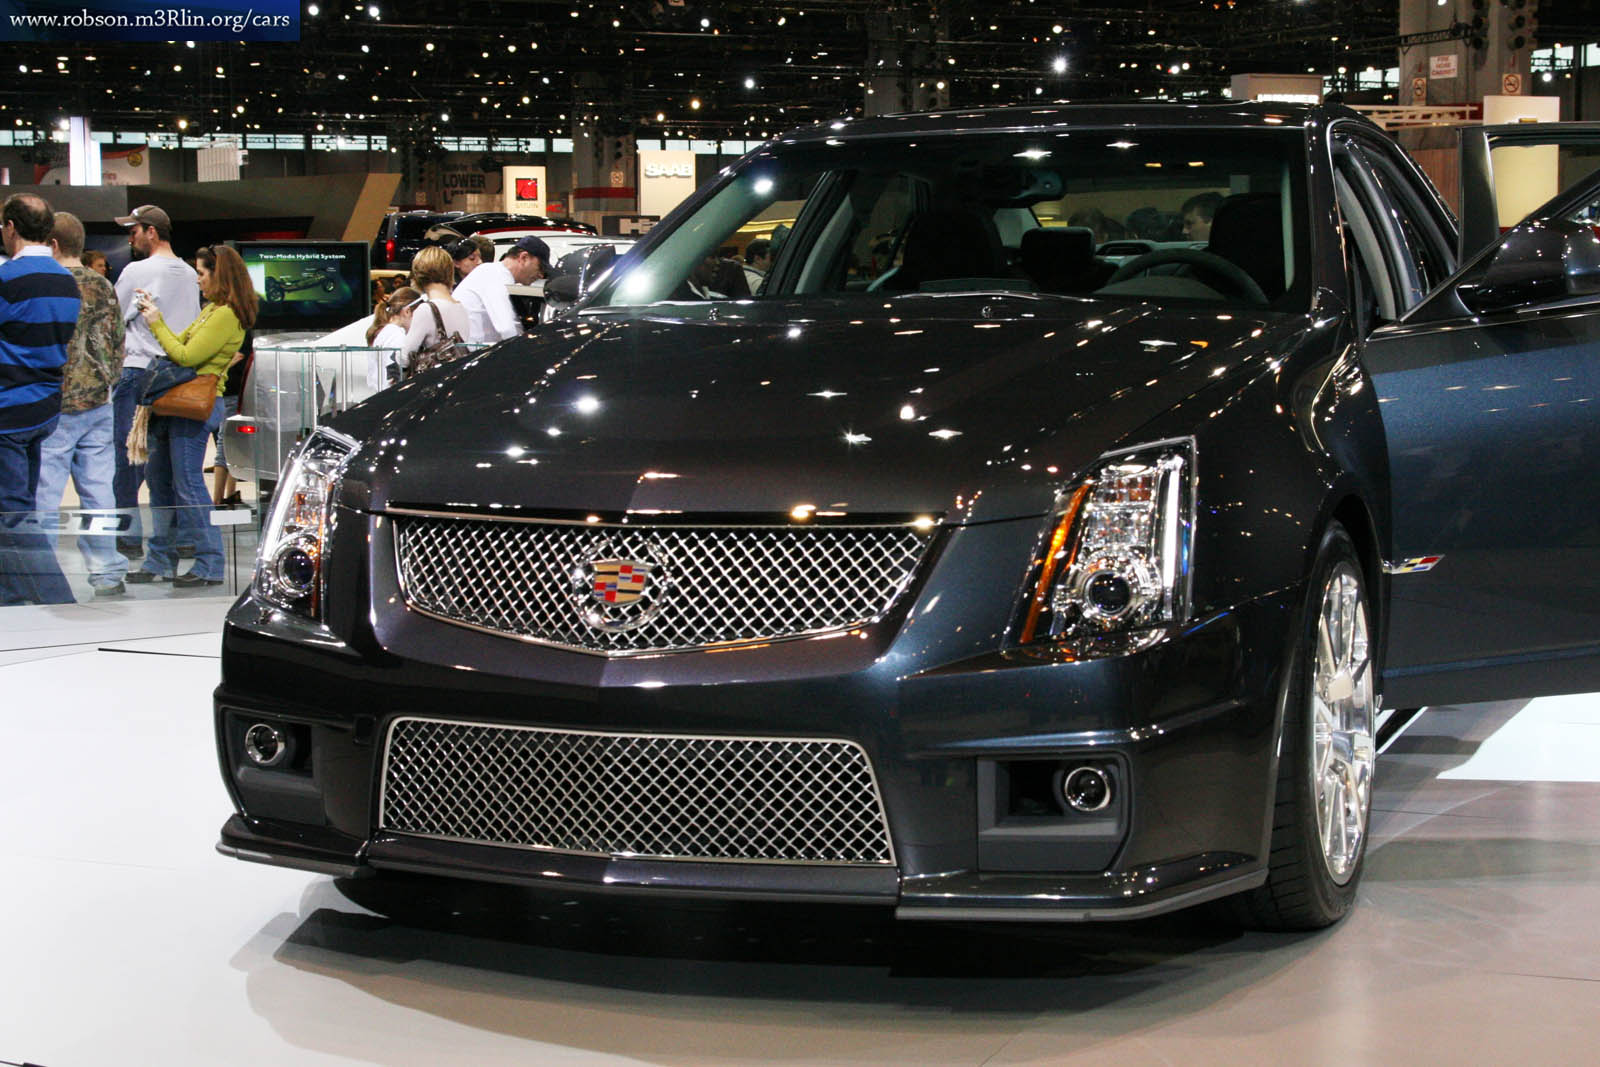 cadillac cts 2008 2009 pictures #13